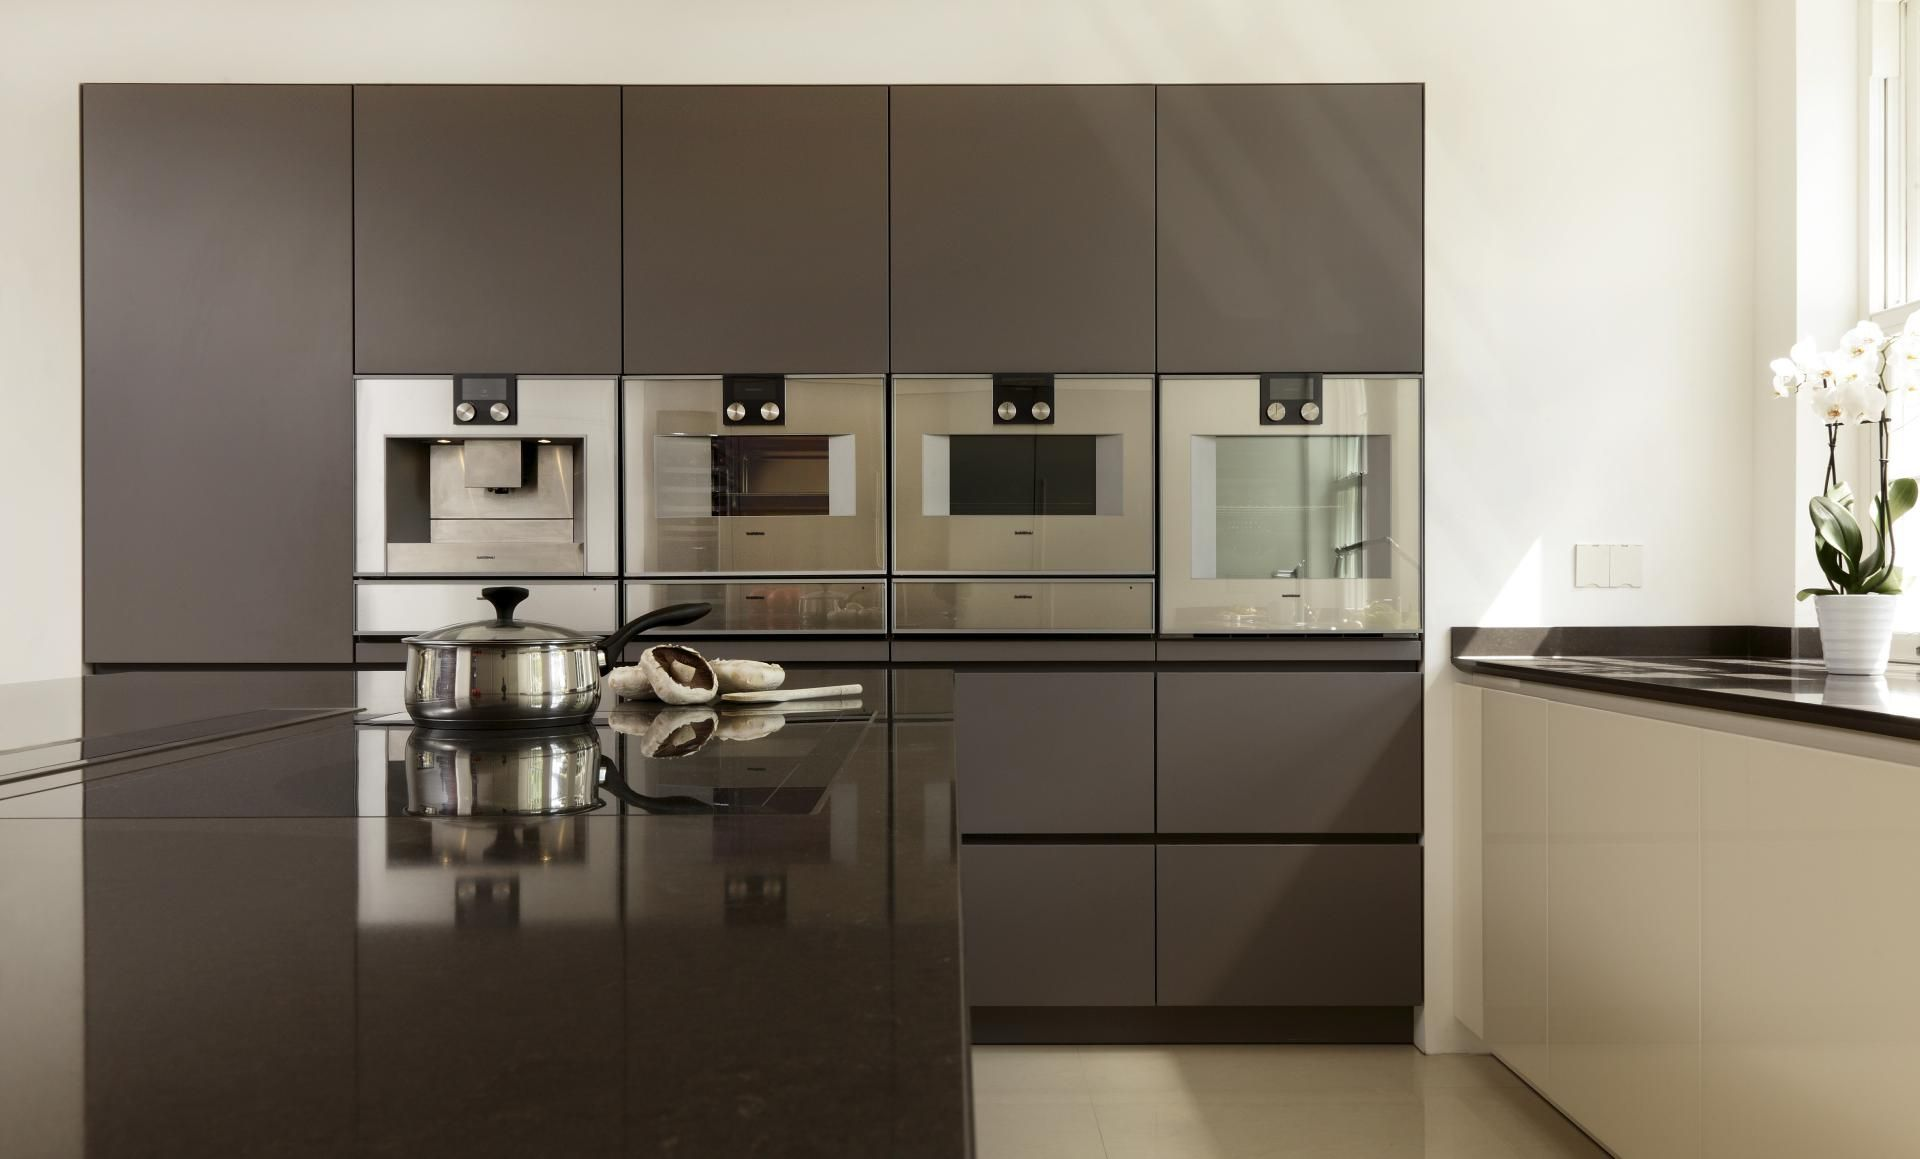 A Sleek And Stylish Handleless Kitchen Design In Tactile Lava